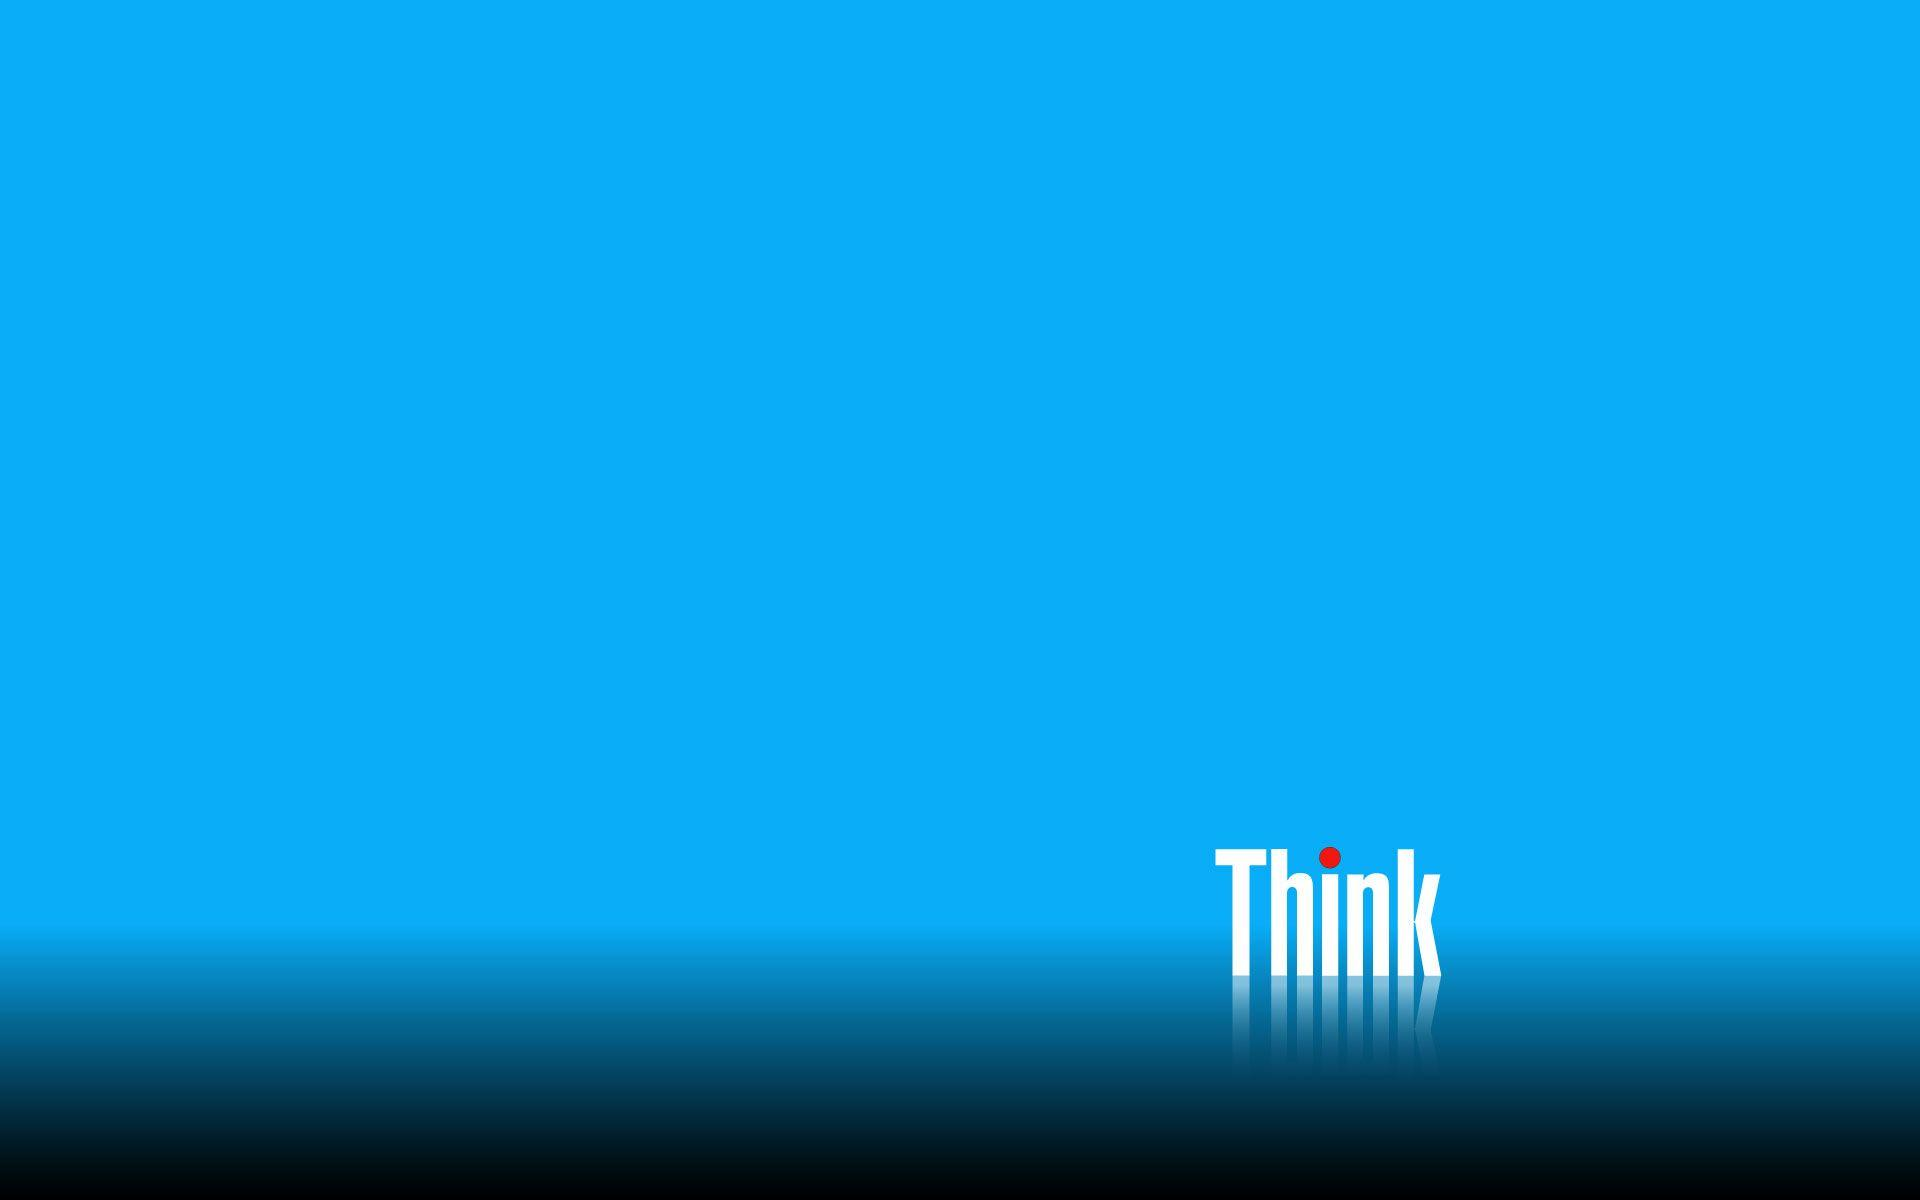 thinkpad wallpapers wallpaper - photo #1